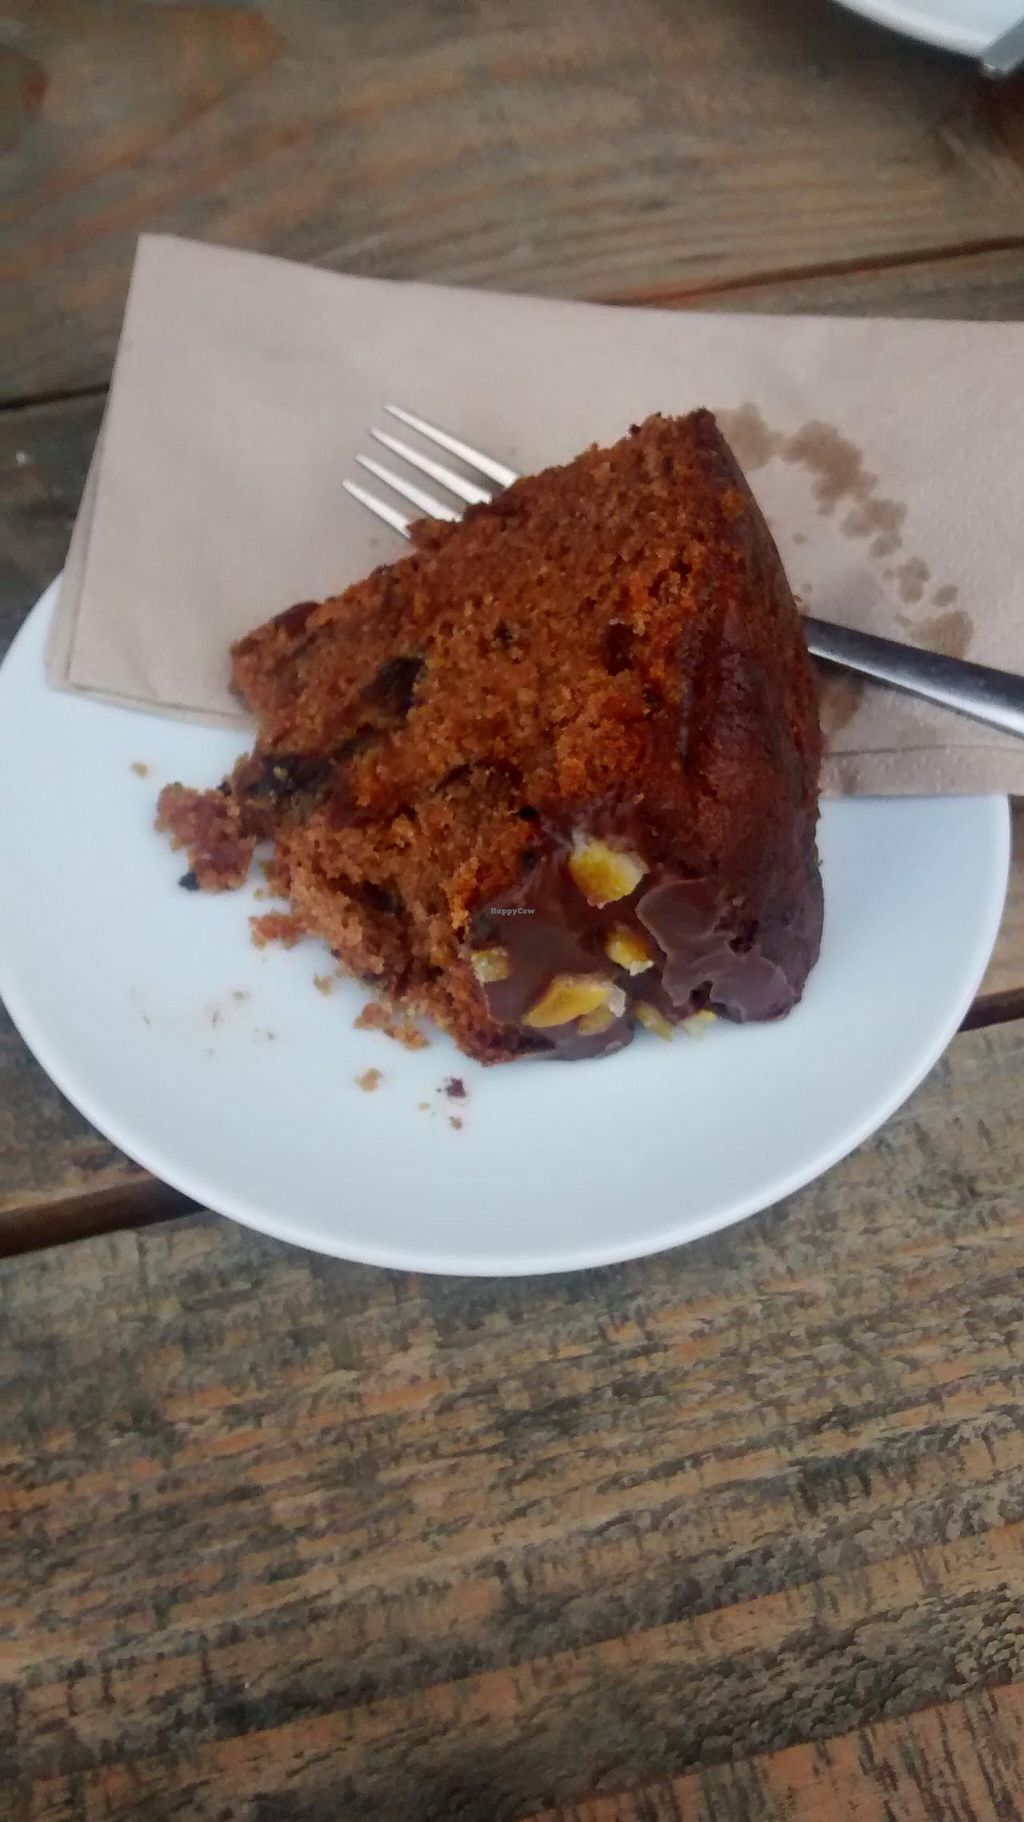 """Photo of Pillars of Hercules Organic Farm Shop and Cafe  by <a href=""""/members/profile/craigmc"""">craigmc</a> <br/>Spicy vegan orange cake <br/> April 7, 2015  - <a href='/contact/abuse/image/26387/98190'>Report</a>"""